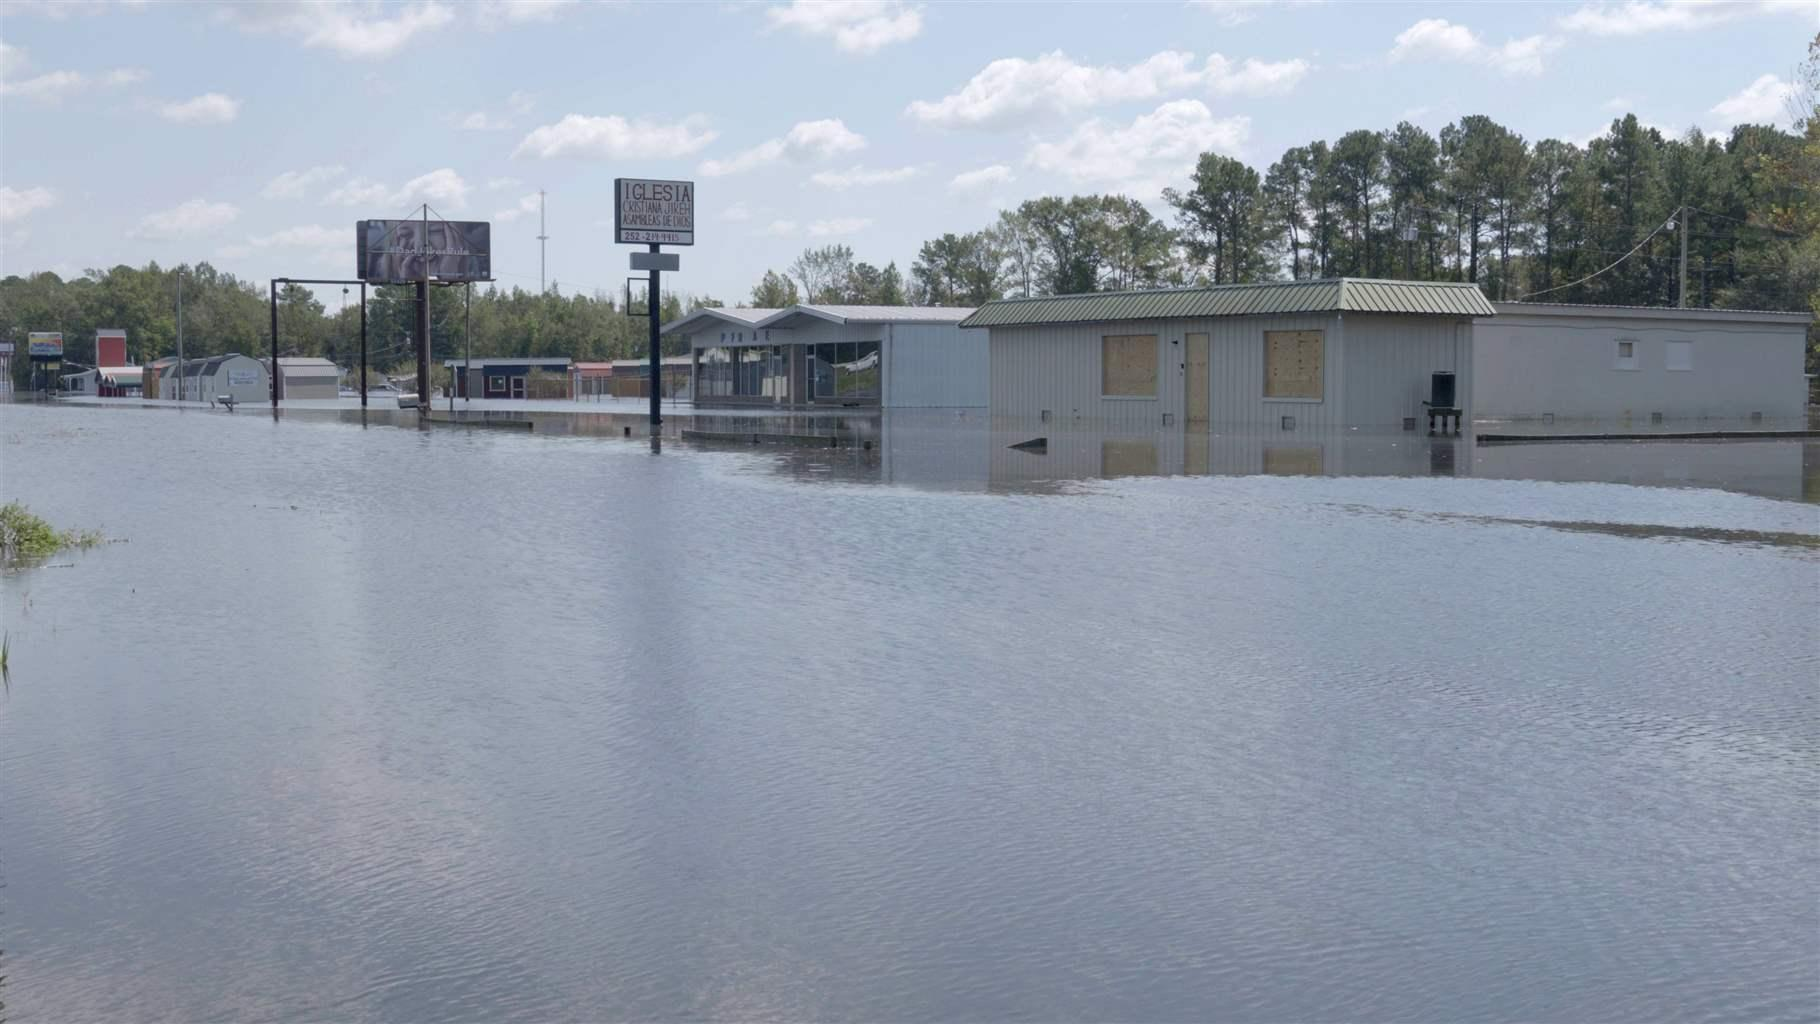 Recent Hurricanes Underscore Critical Need for Better Flood Ready Infrastructure Standards